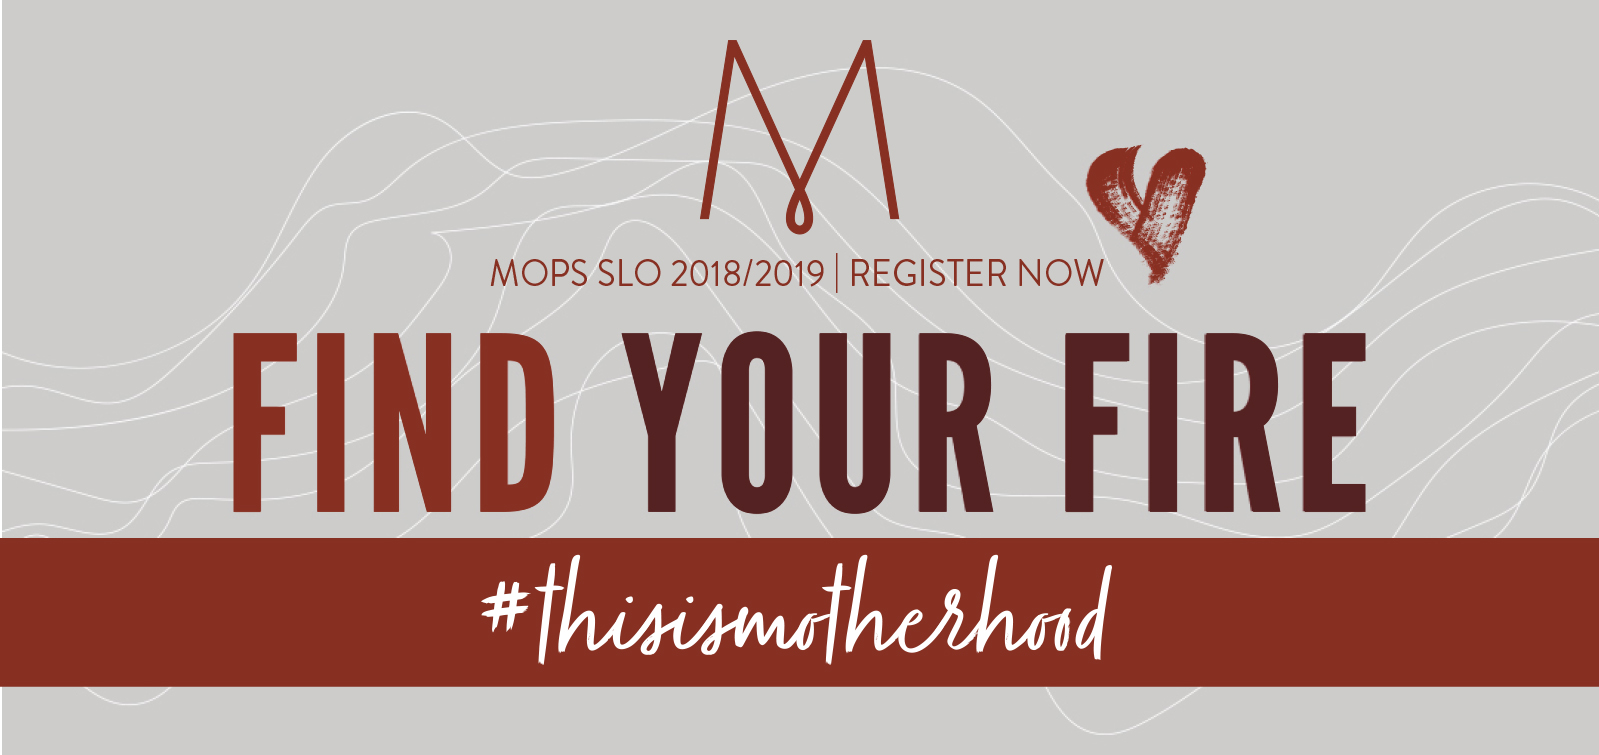 Find your fire header for registration